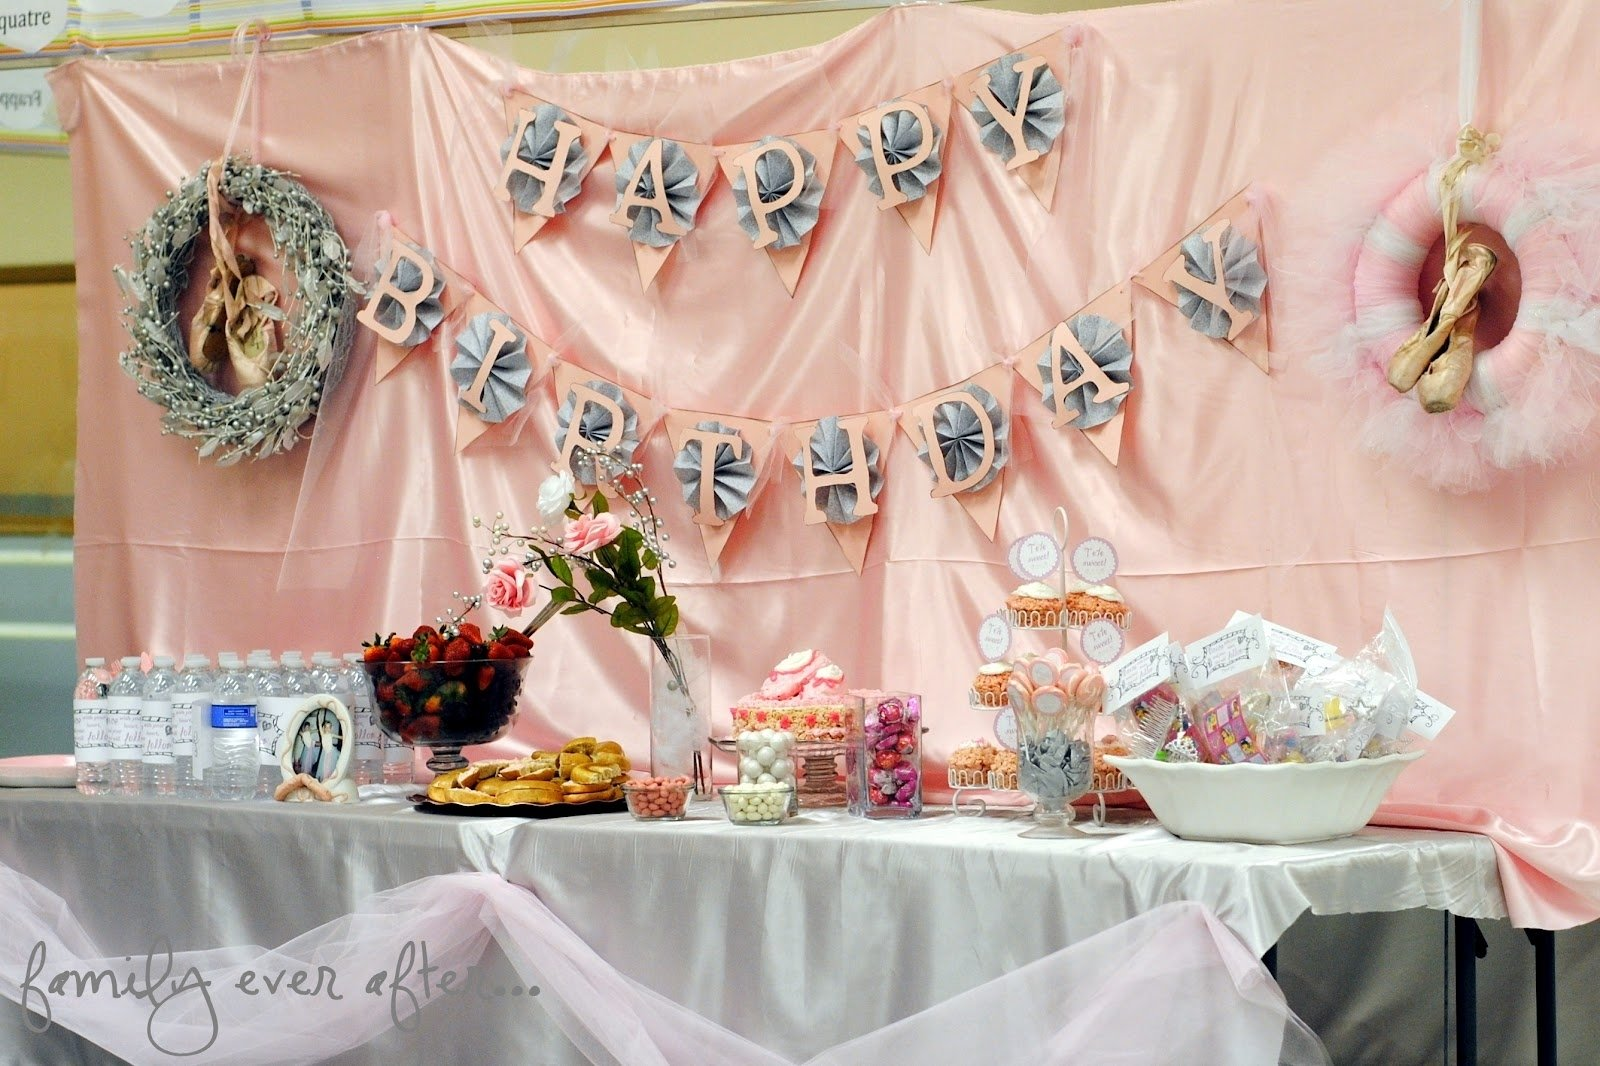 10 Wonderful Birthday Party Ideas For Little Girls 50 birthday party themes for girls i heart nap time 16 2020